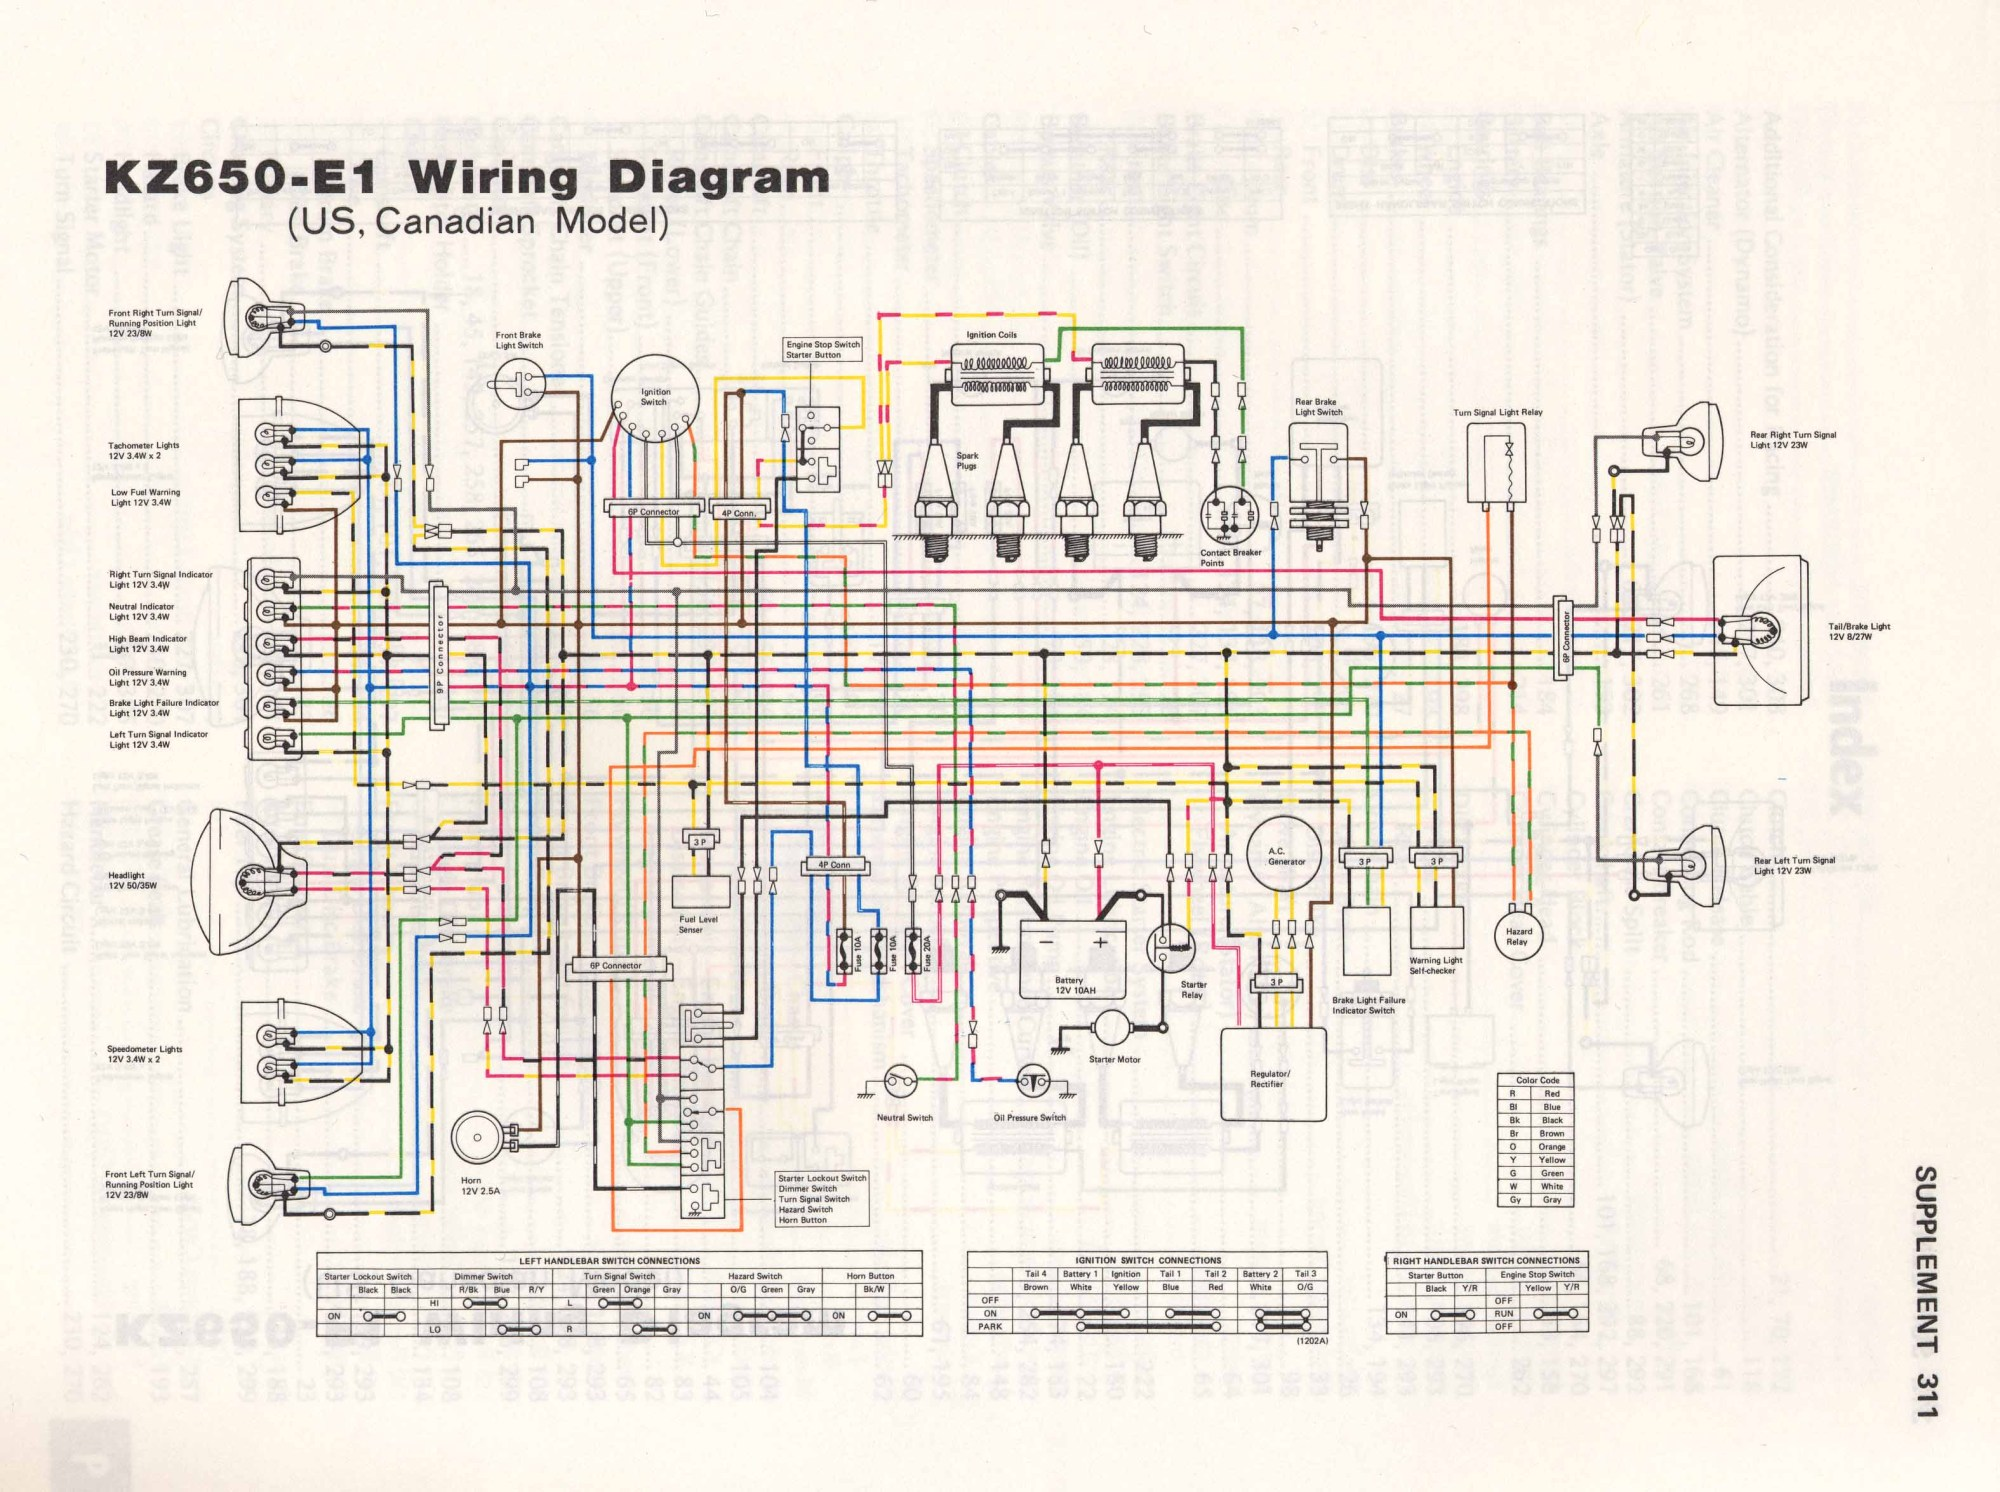 hight resolution of kz650 info wiring diagrams rh diagrams kz650 info basic electrical wiring diagrams h1 wiring diagram